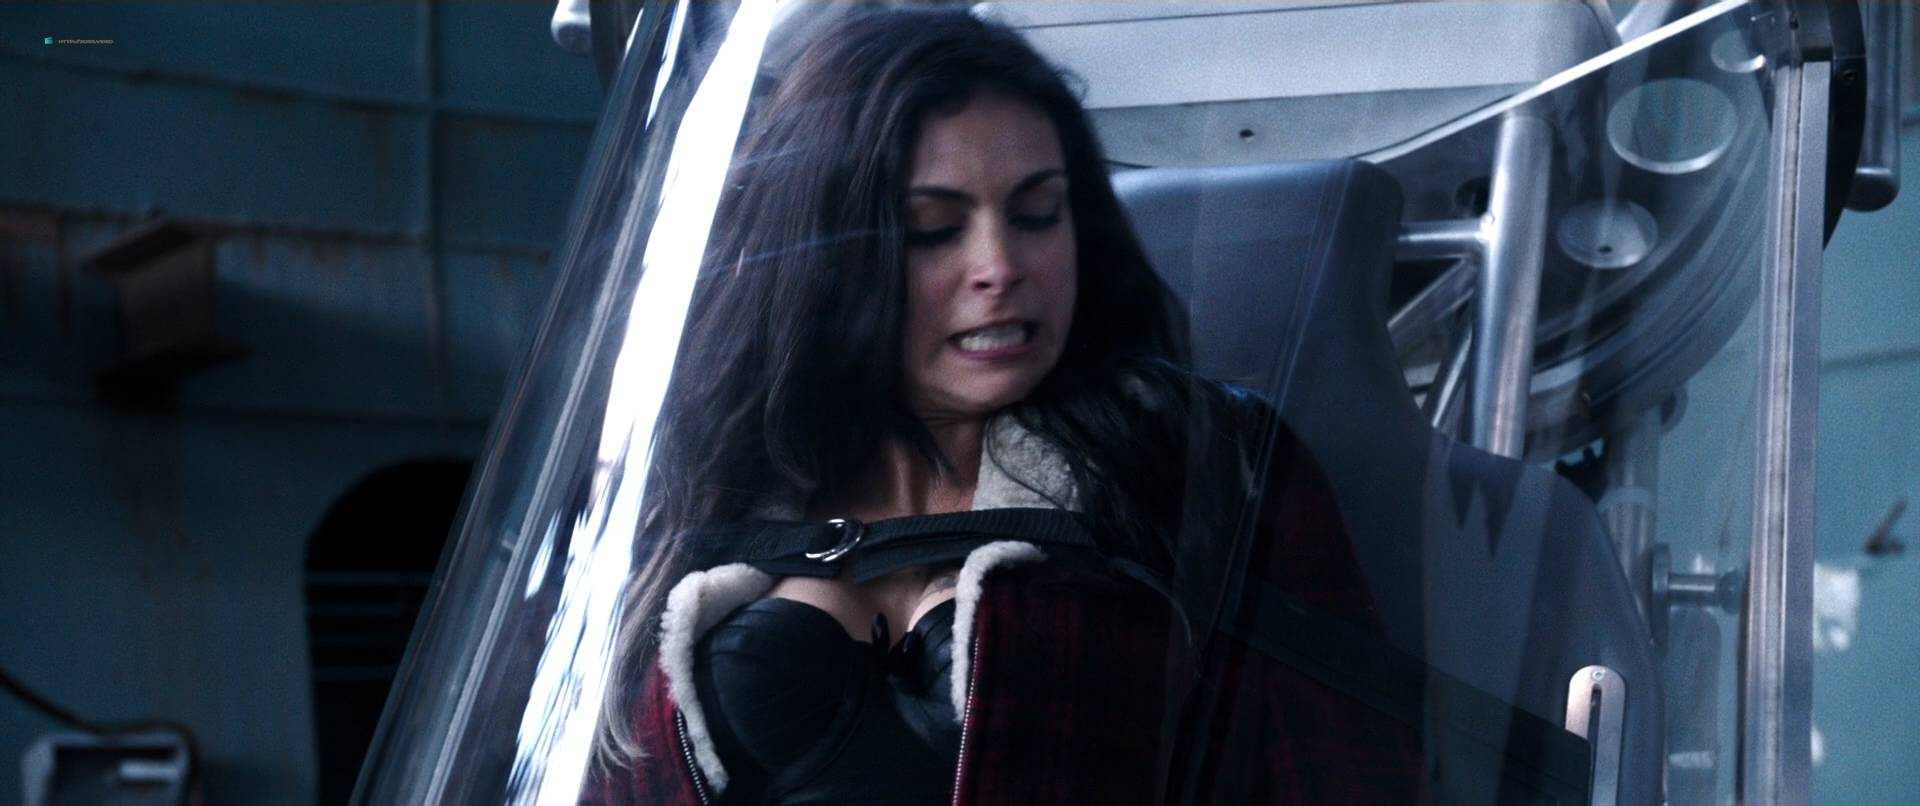 Morena Baccarin hot sex and uber sexy - Deadpool (2016) HD 1080p (3)